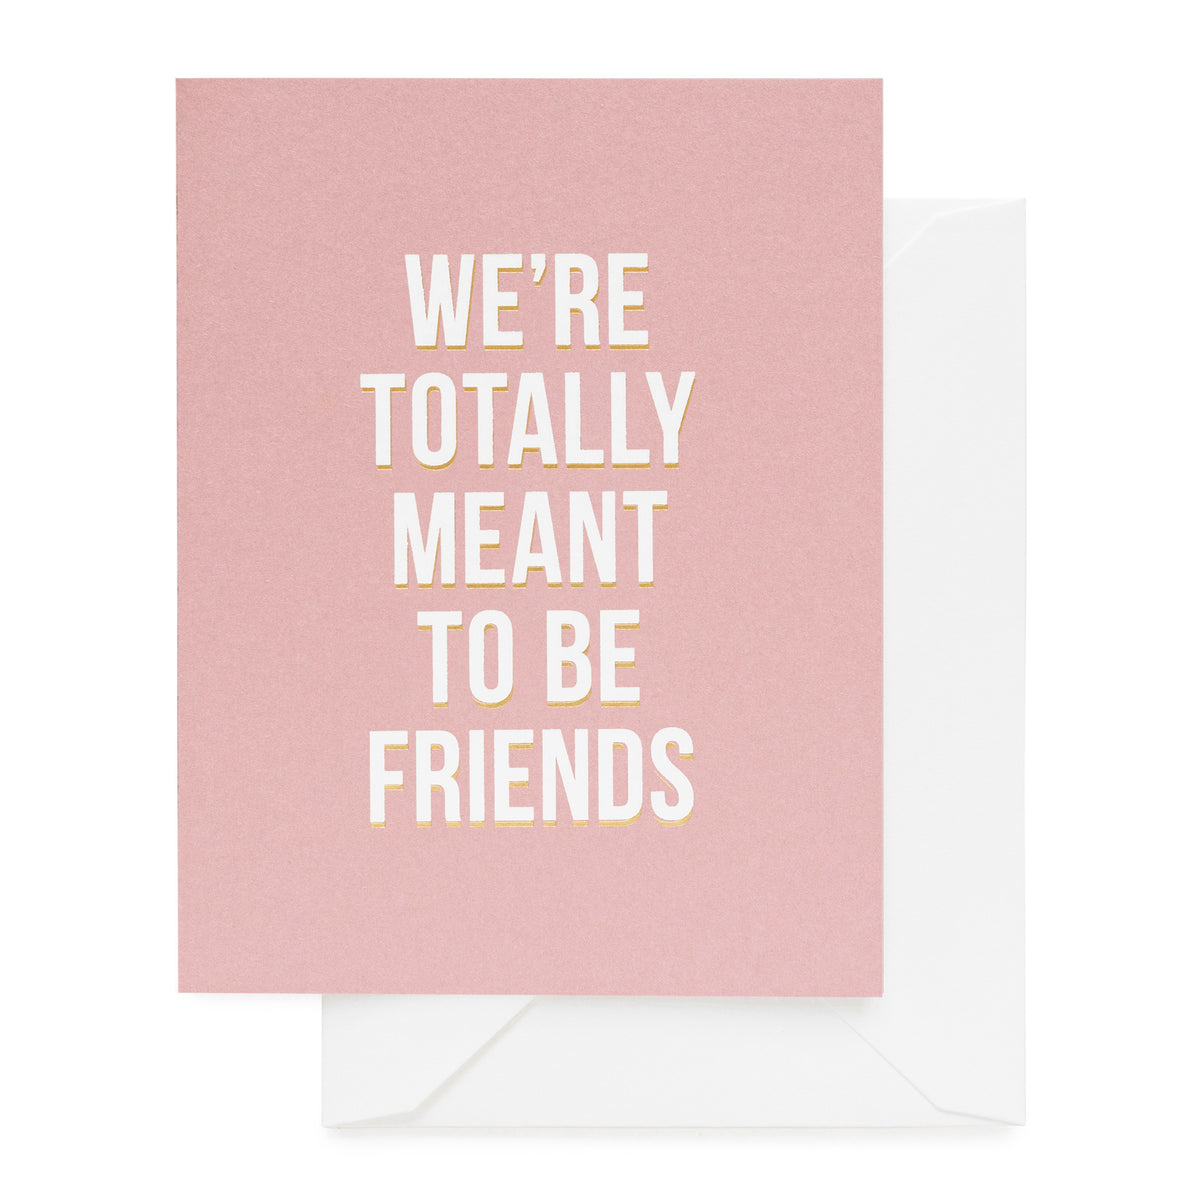 Dusty rose card printed with We're Totally Meant To Be Friends